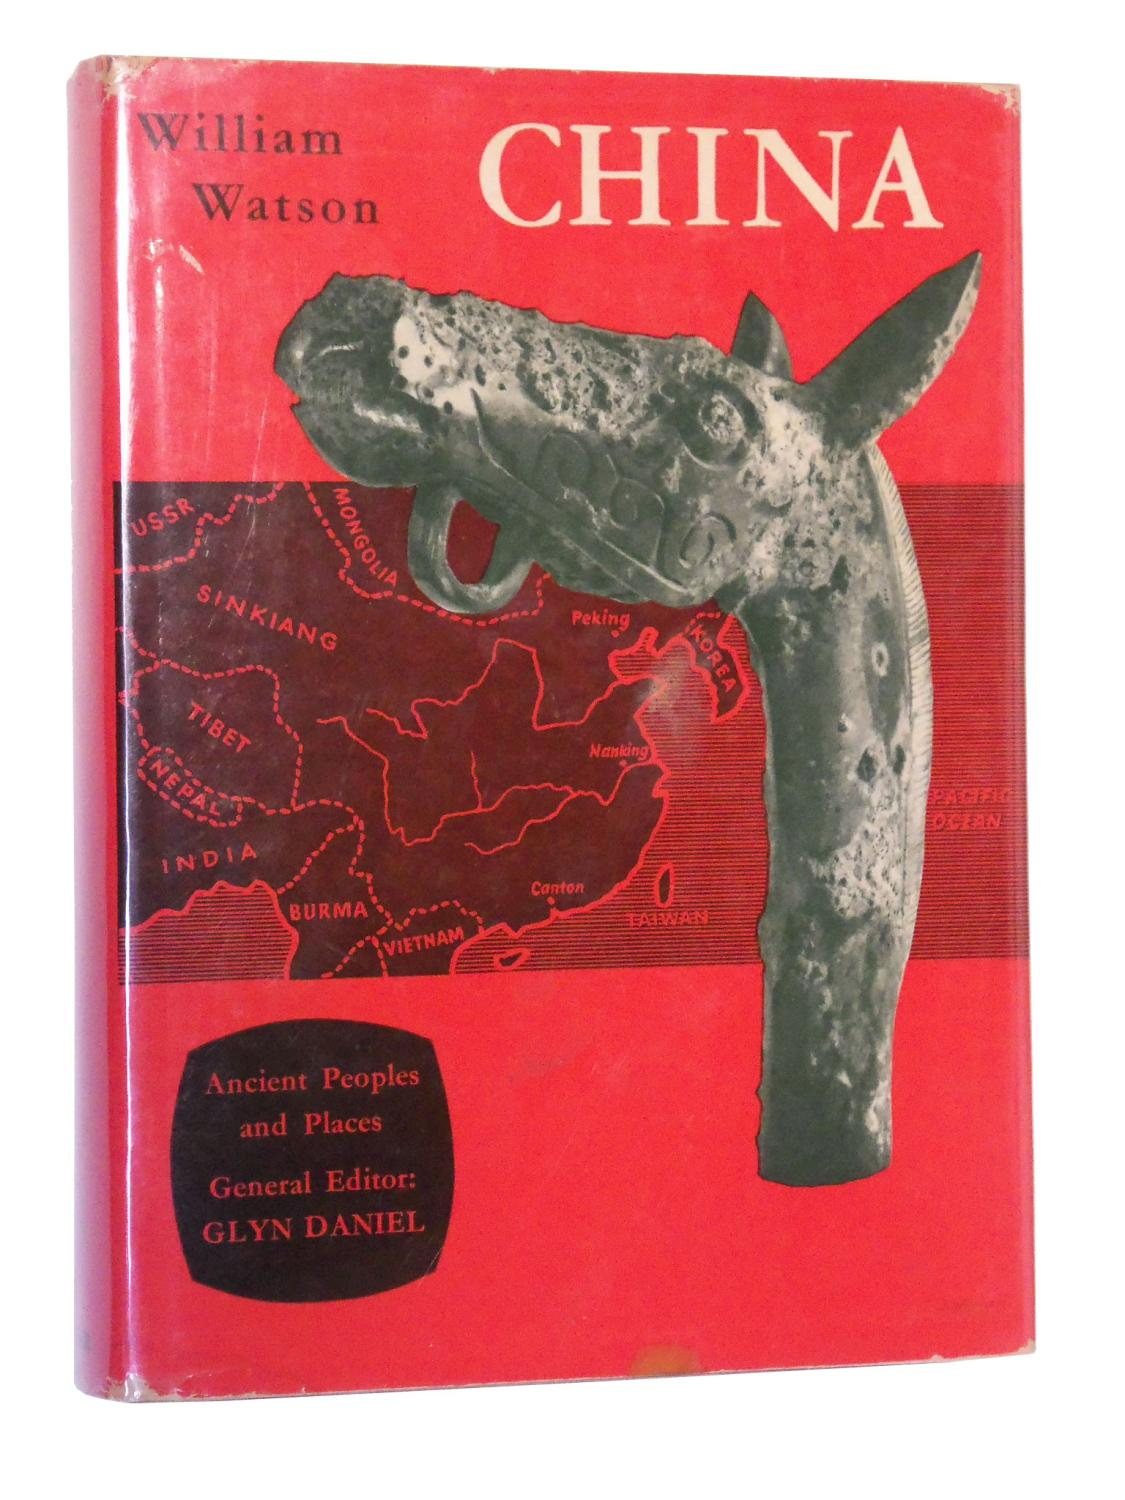 China: Before the Han Dynasty [Volume 23 in the series Ancient Peoples and Places]: Watson, William